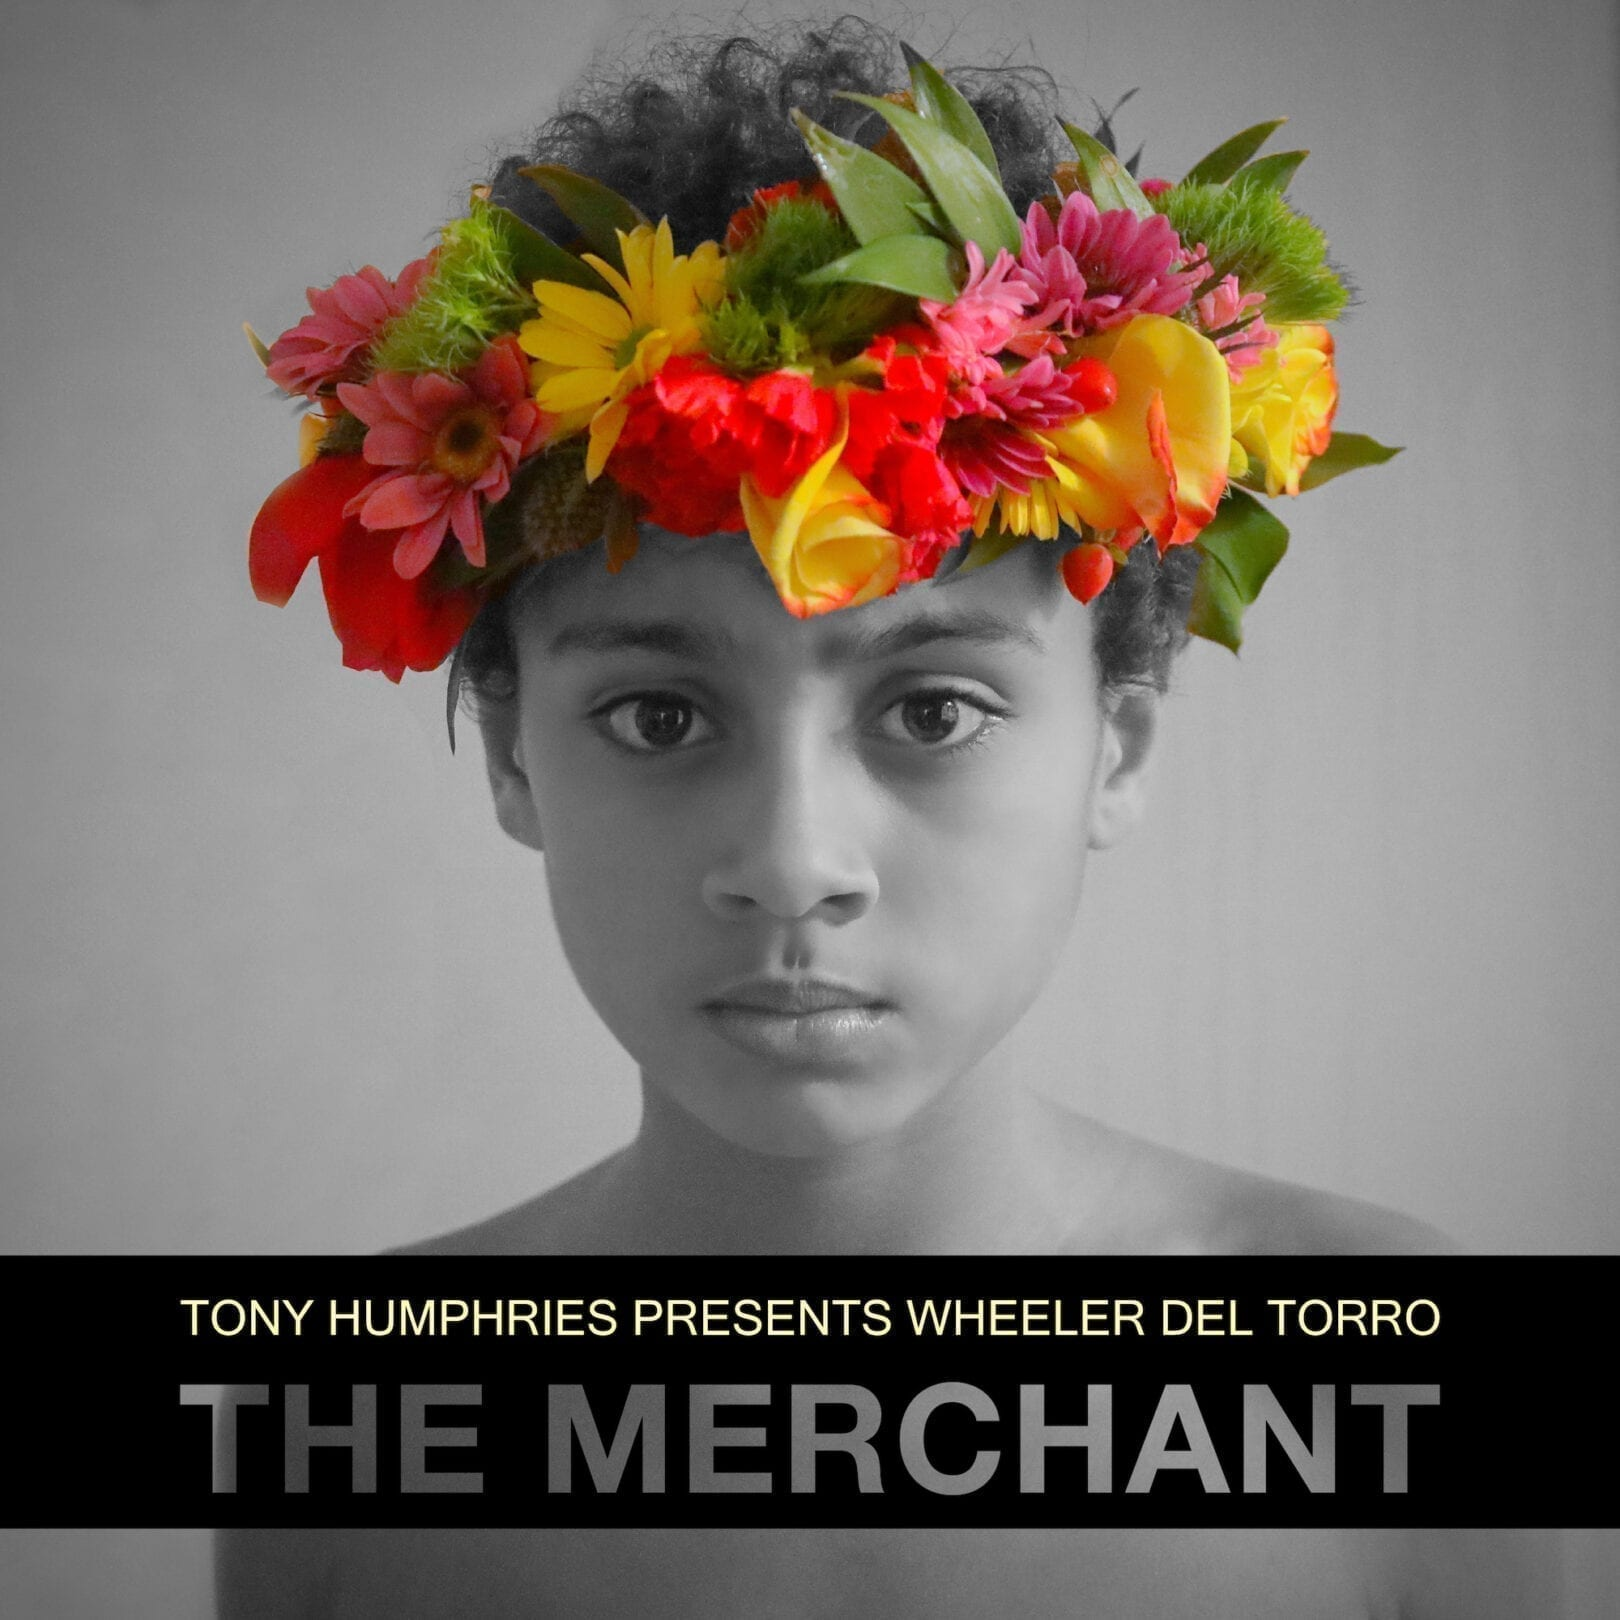 Tony Humphries Presents Wheeler del Torro 'The Merchant' (Incl. David Harness & Paul Adam Remixes) Dog Day Records